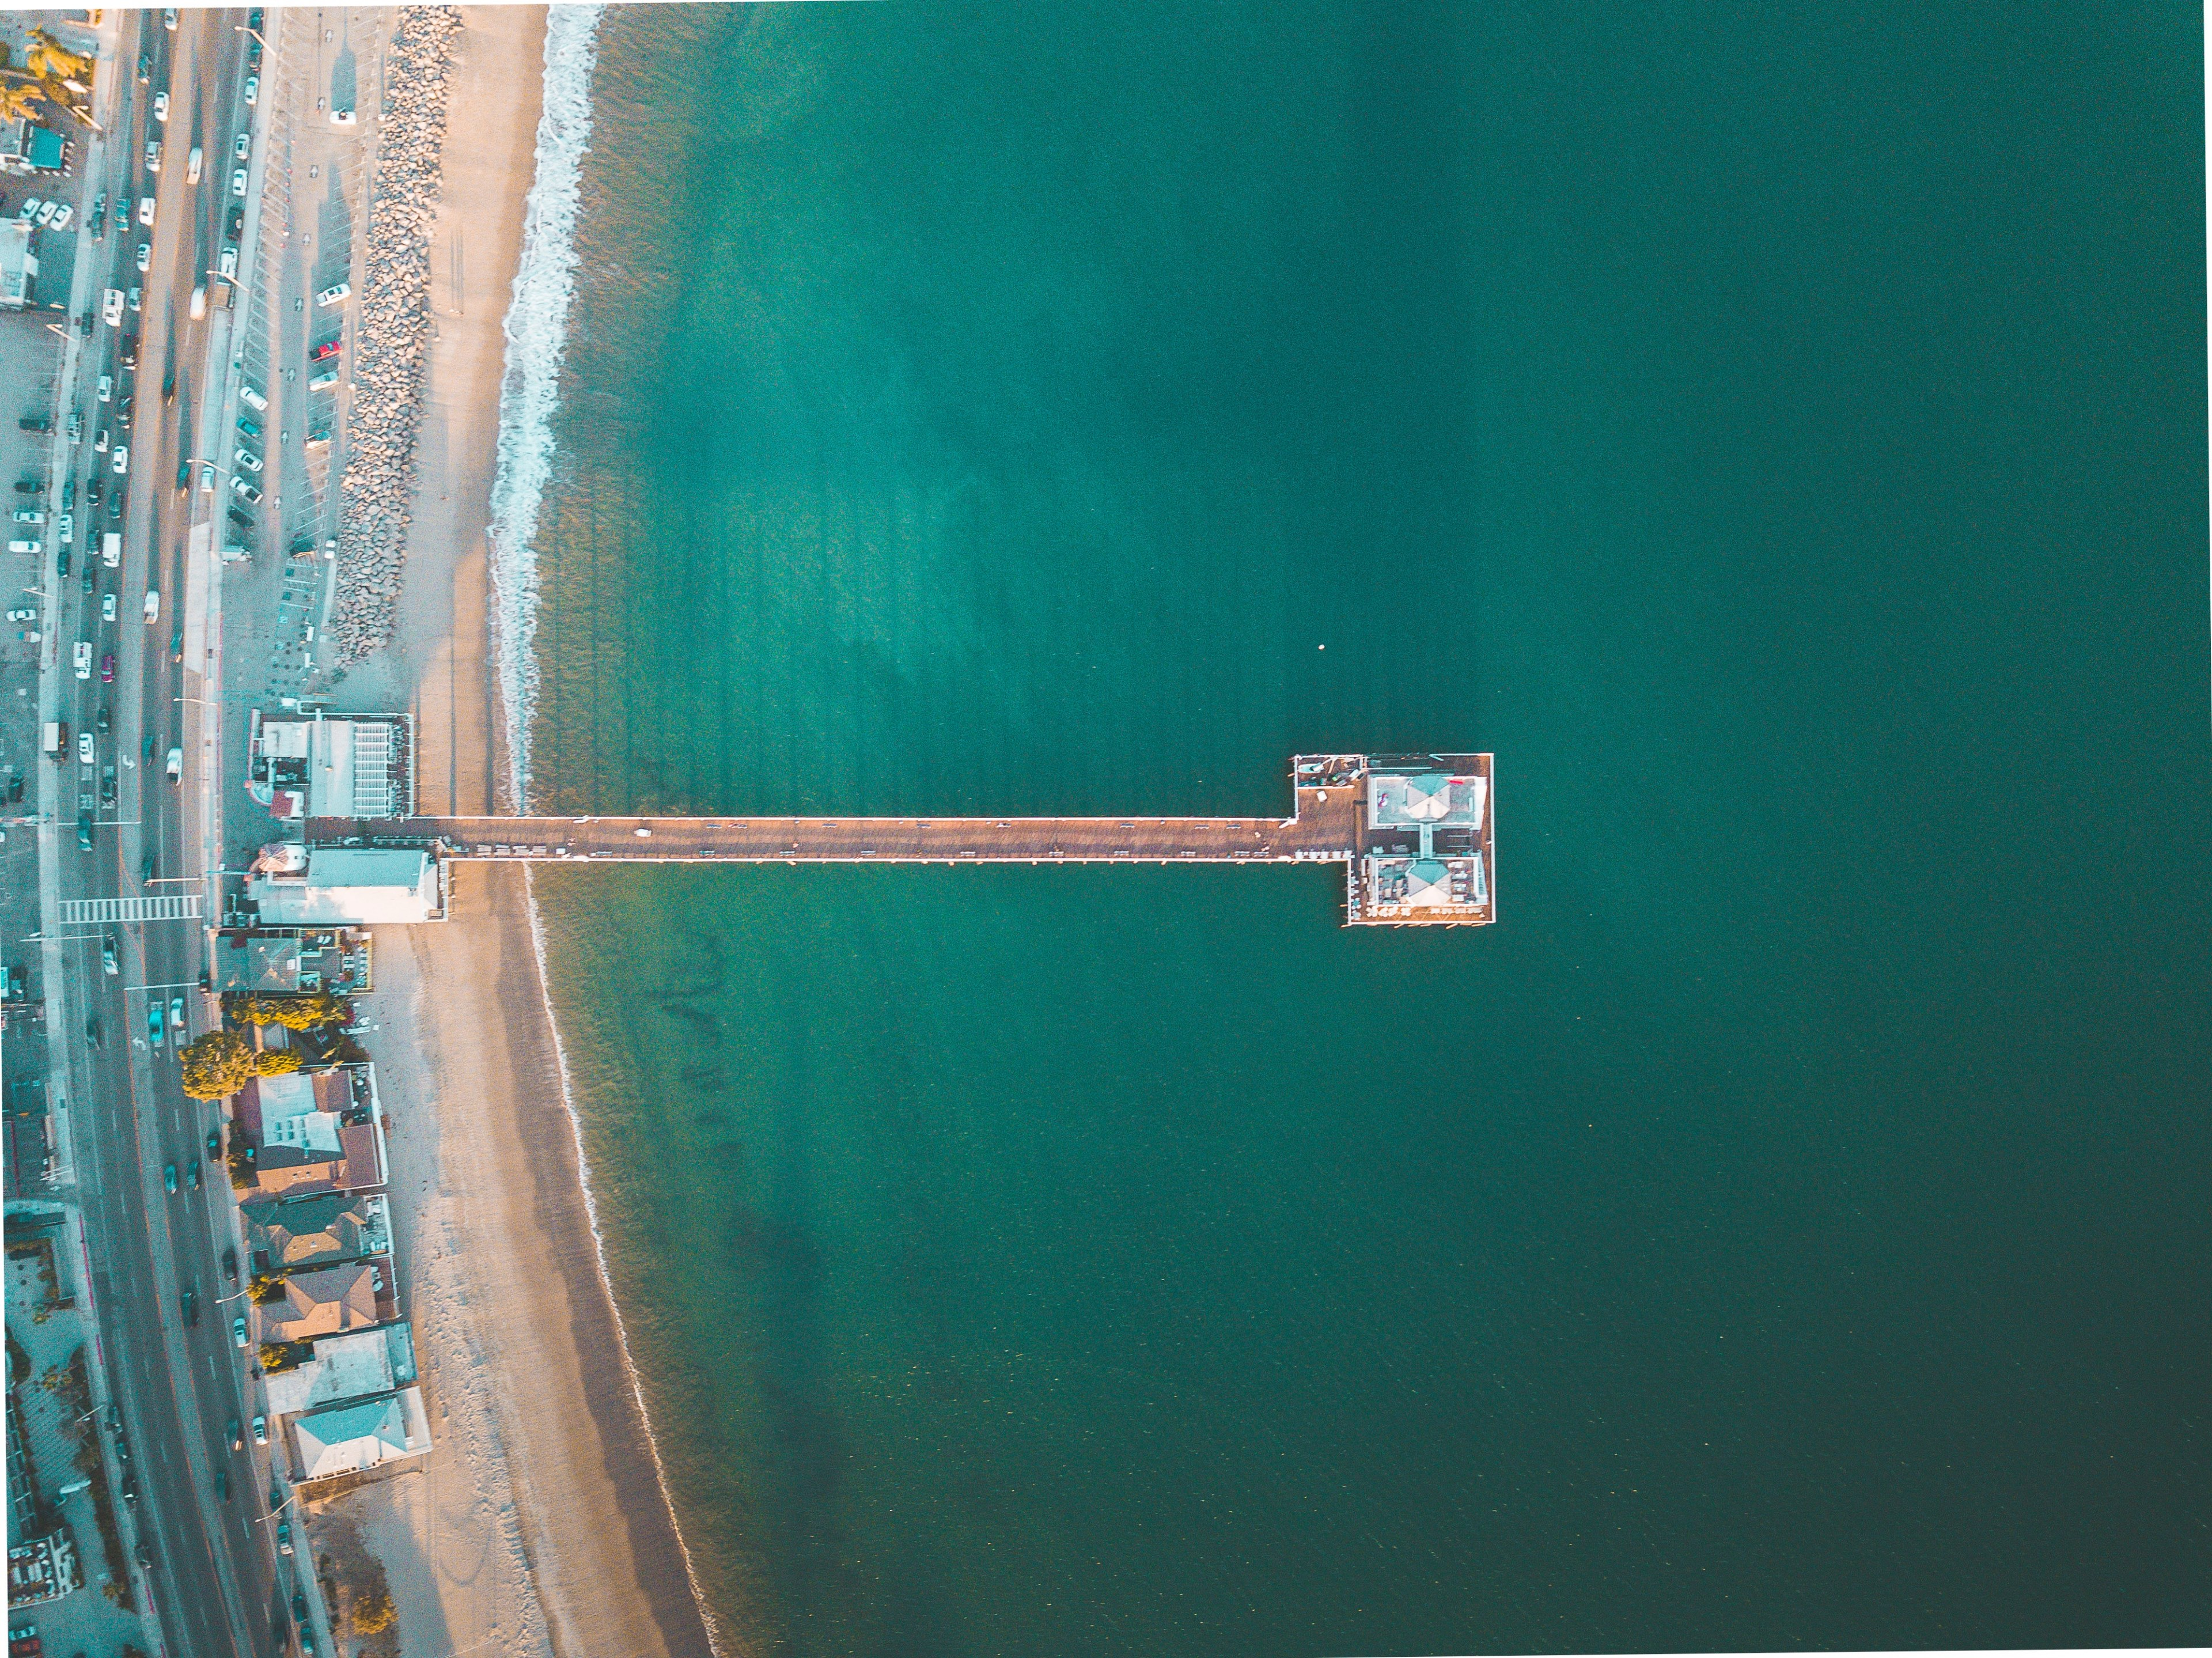 aerial view sea ocean and water hd 4k wallpaper and background 3840x2878